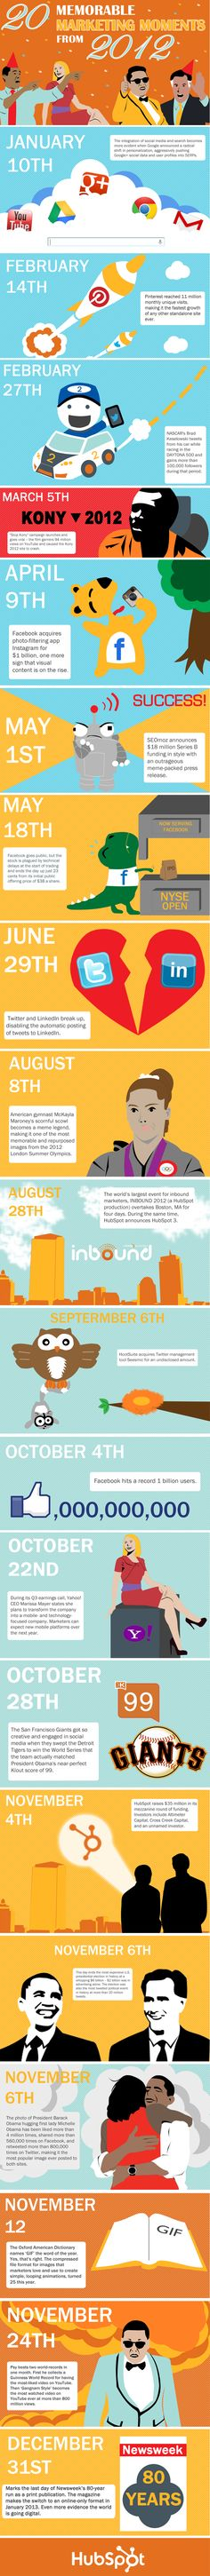 20 Memorable Marketing Moments Of 2012 - Infographic